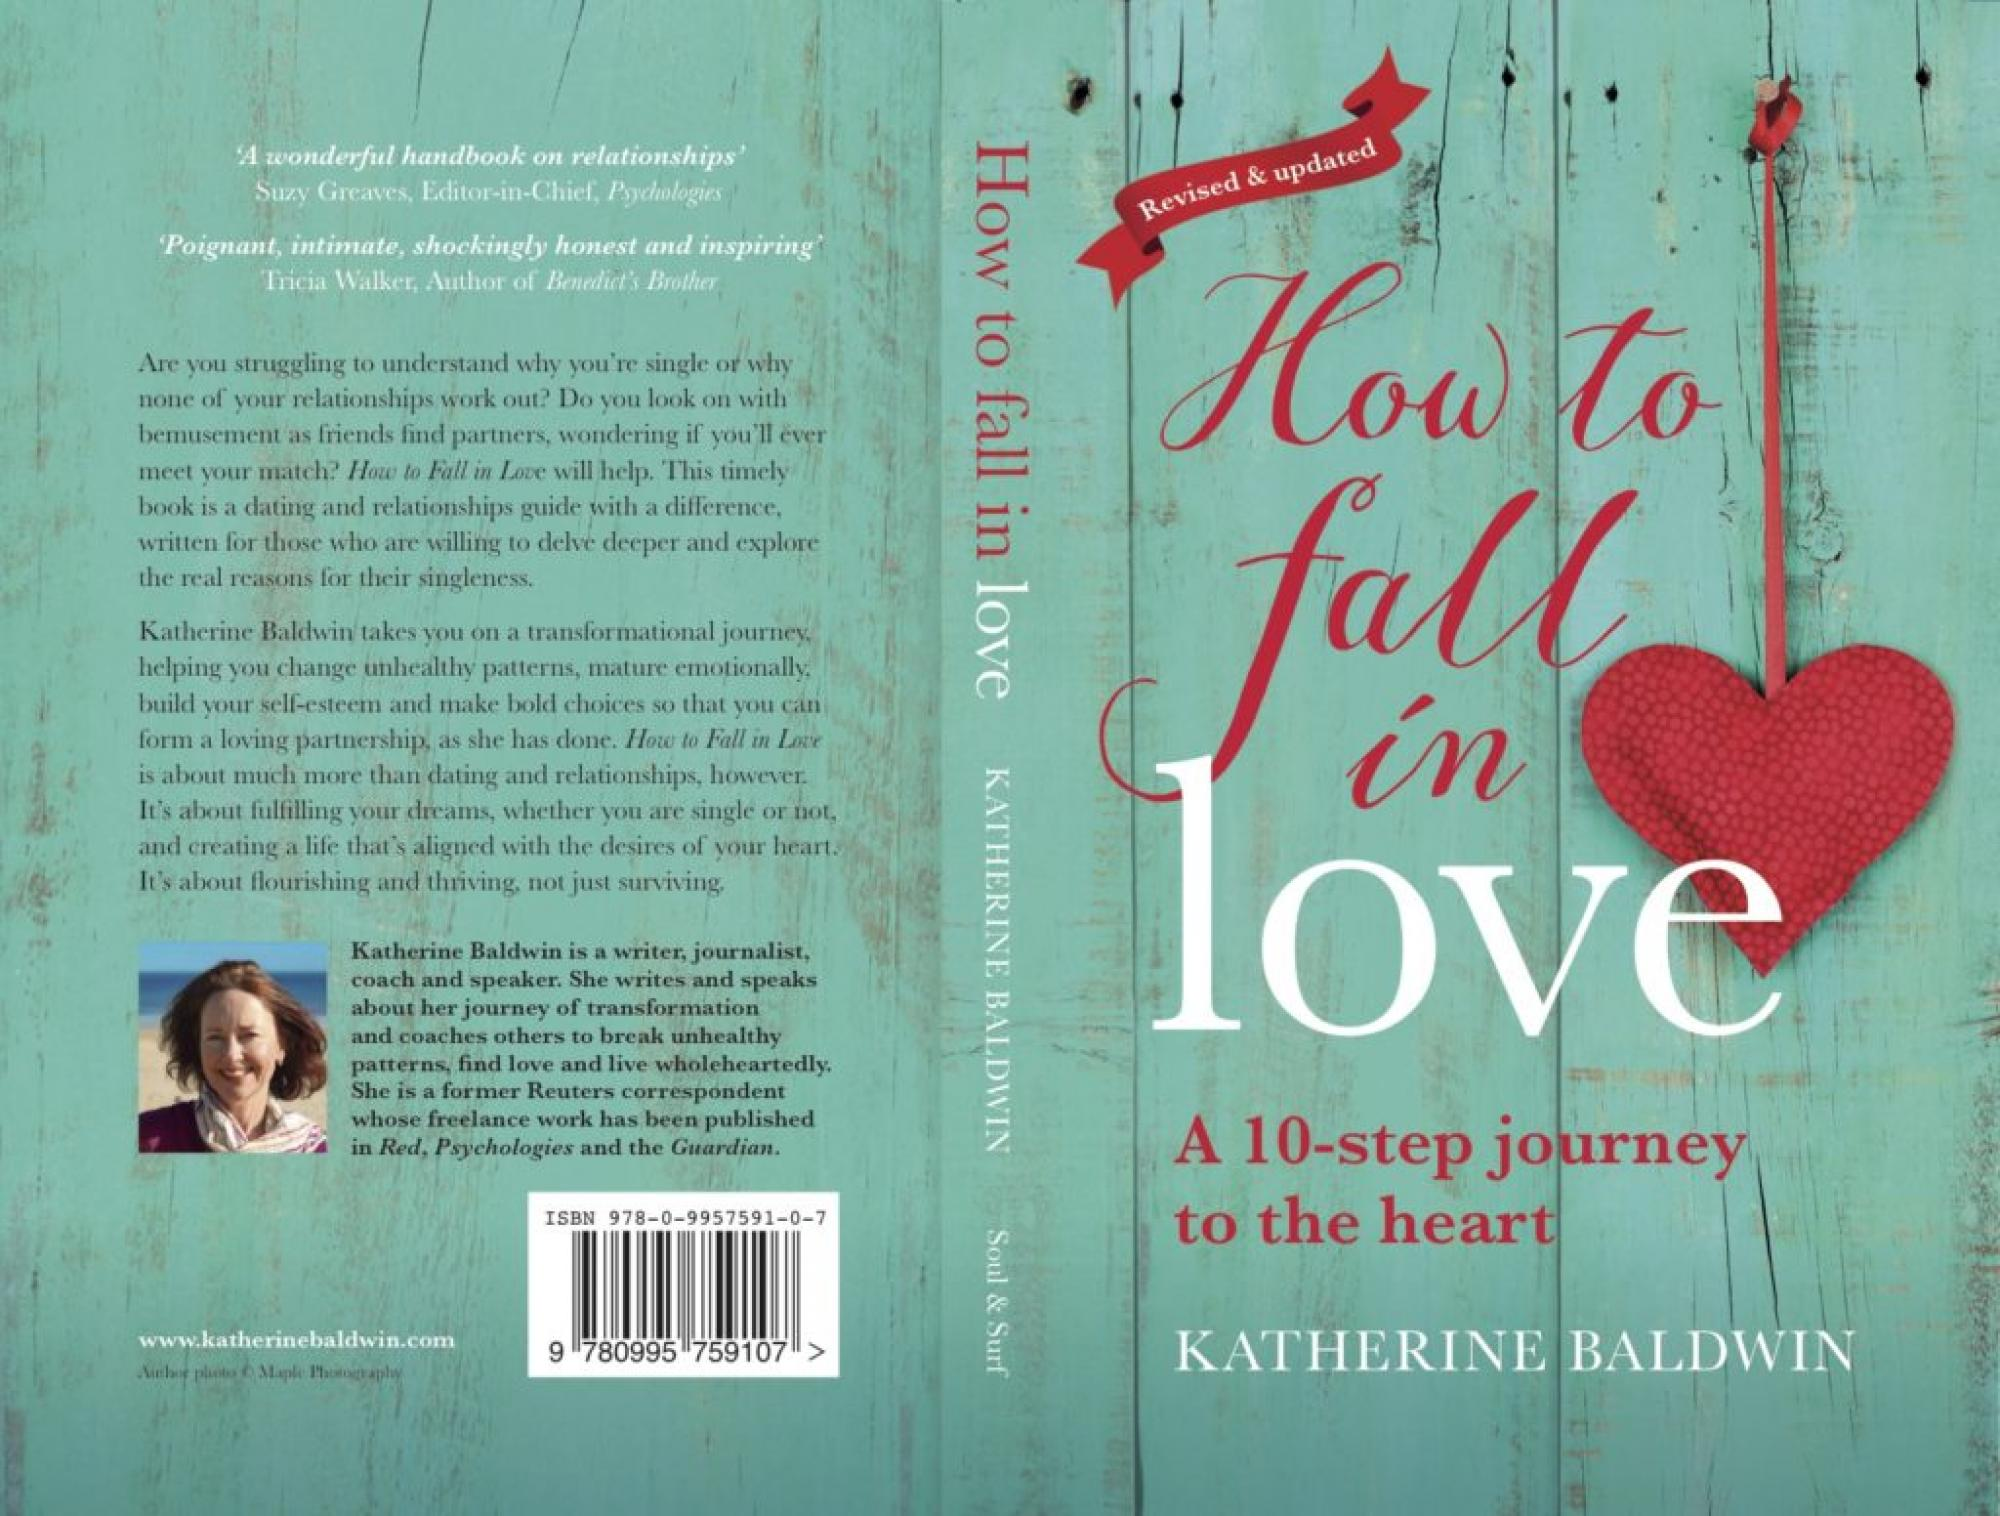 How to fall in love – A 10-step journey to the heart by Katherine Baldwin